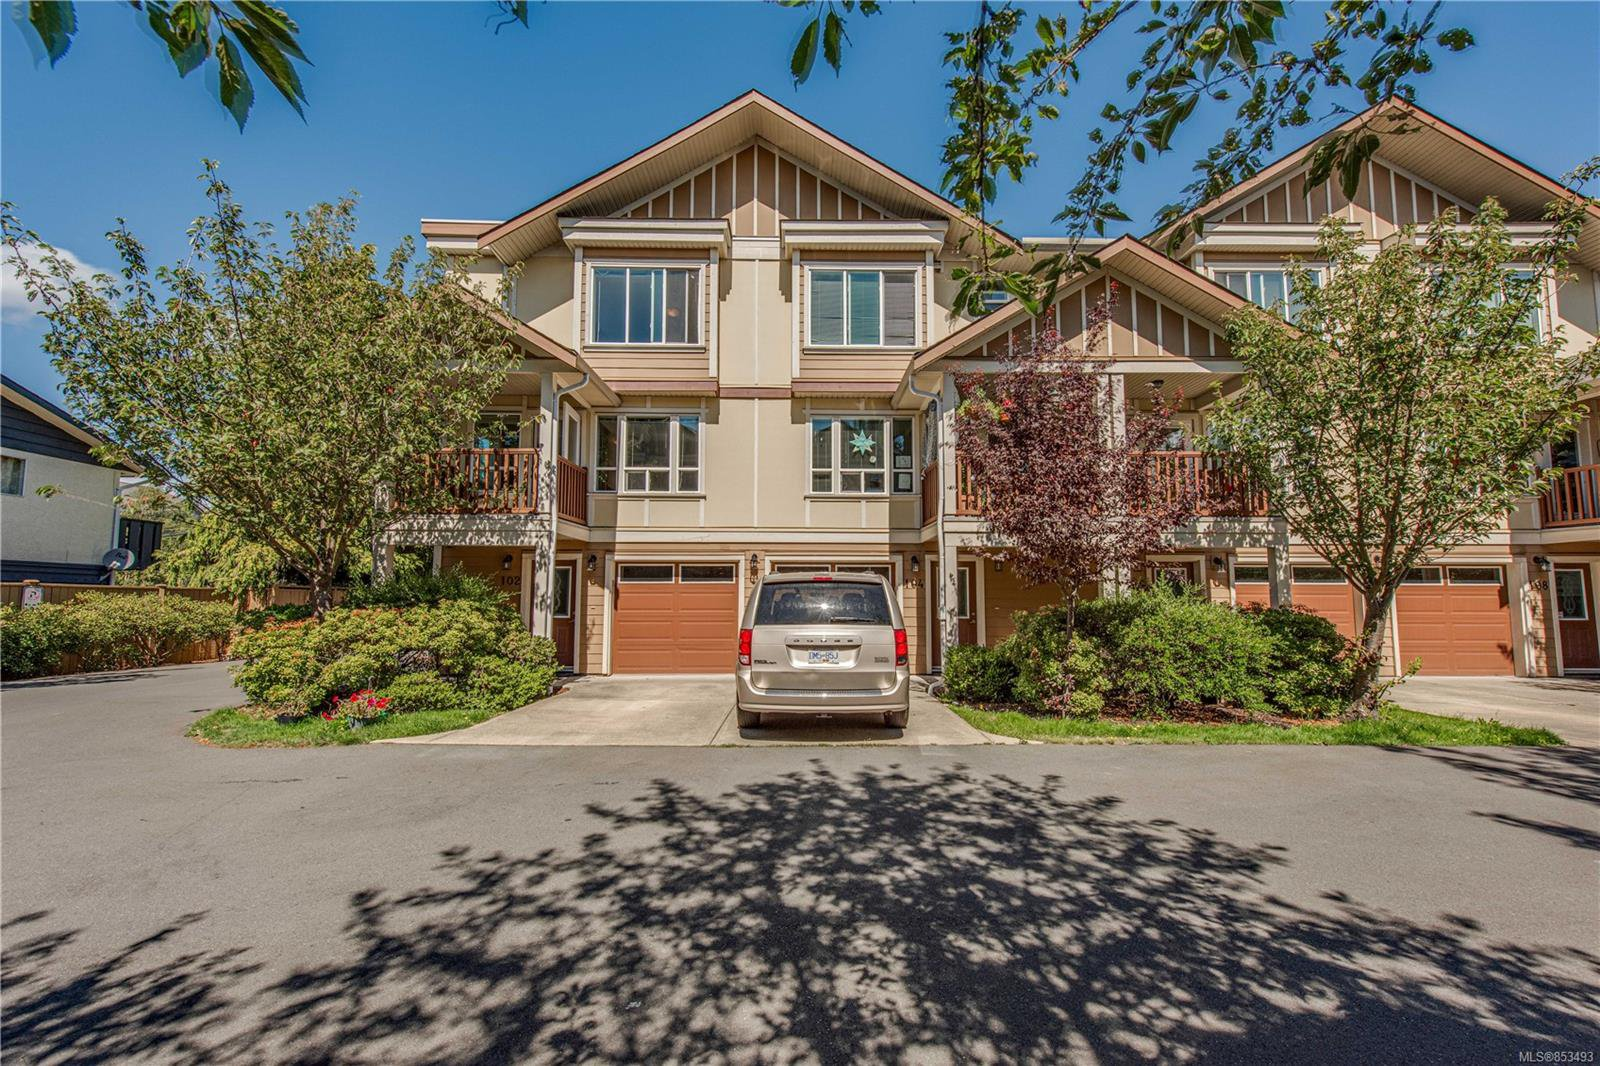 Main Photo: 102 827 Arncote Ave in : La Langford Proper Row/Townhouse for sale (Langford)  : MLS®# 853493